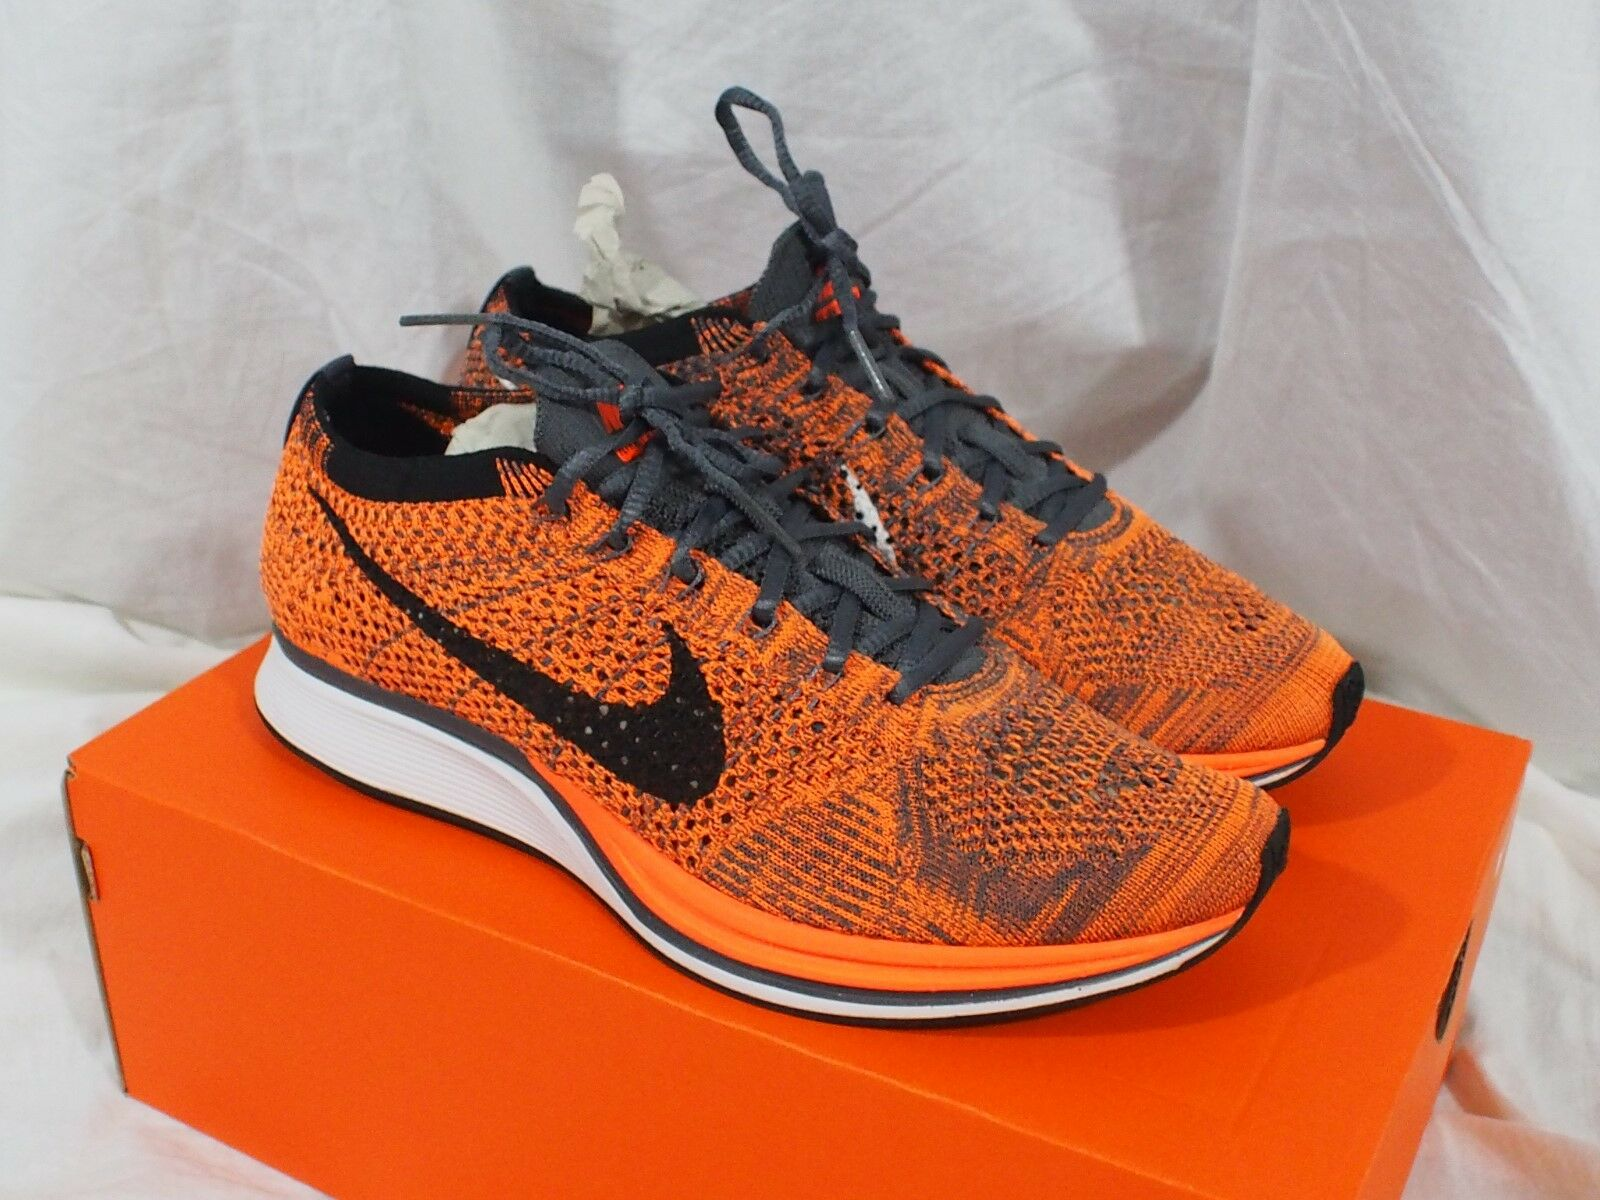 Nike Flyknit Racer Total Orange Chester Cheetah 526628-810